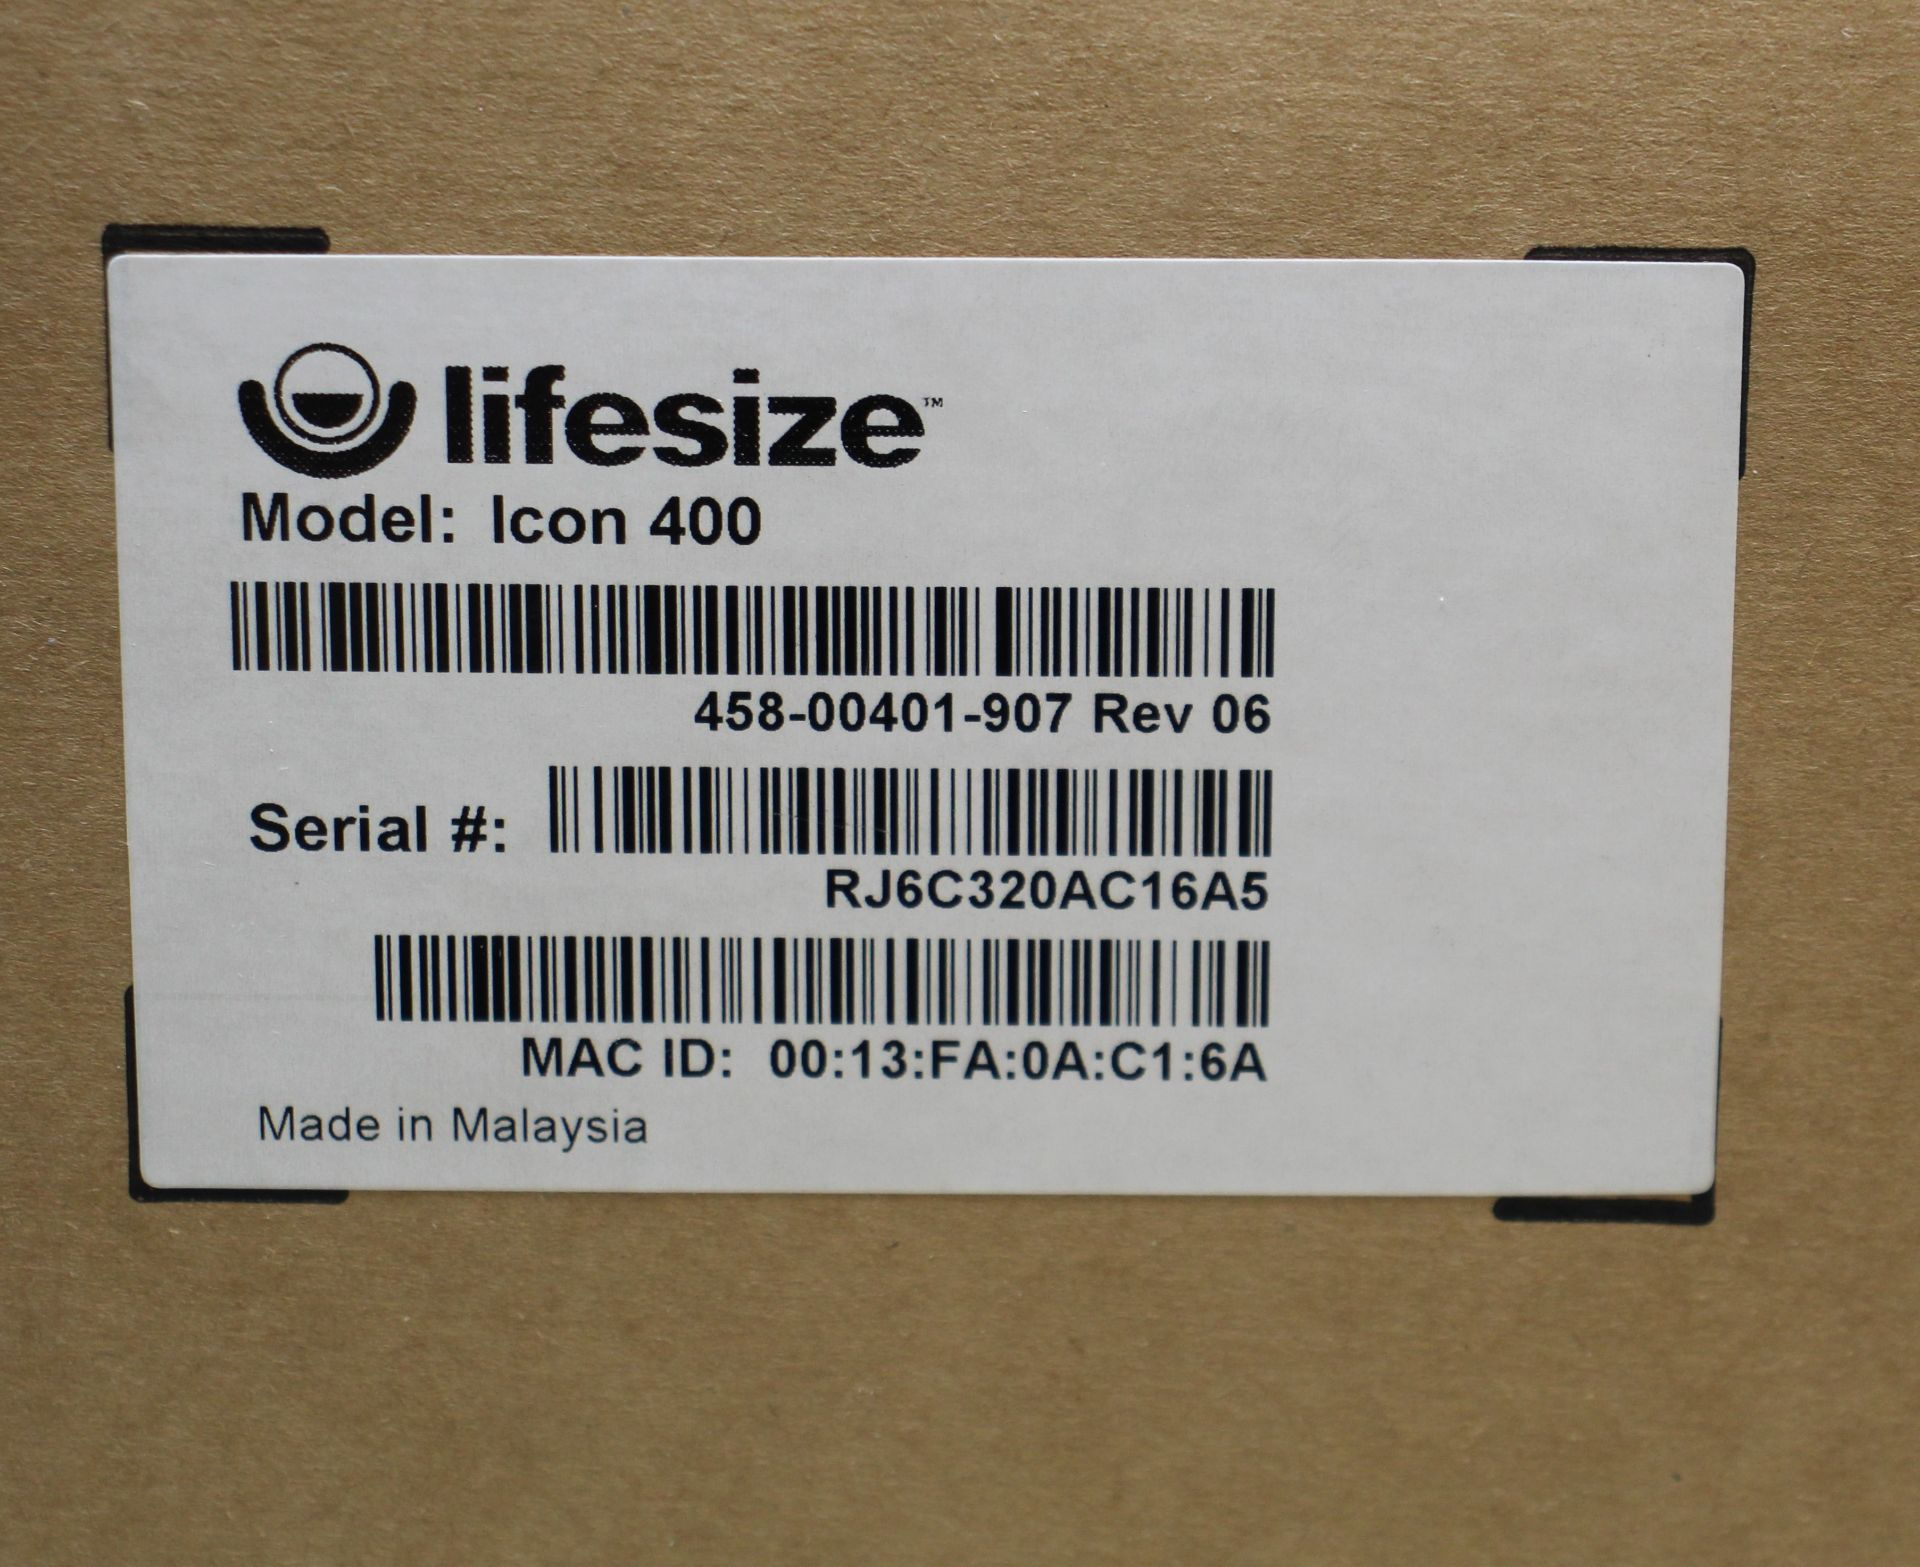 A pre-owned Lifesize Icon 400 Video Conferencing Camera (M/N: LFZ-003) (Remote and power adaptor - Image 3 of 4